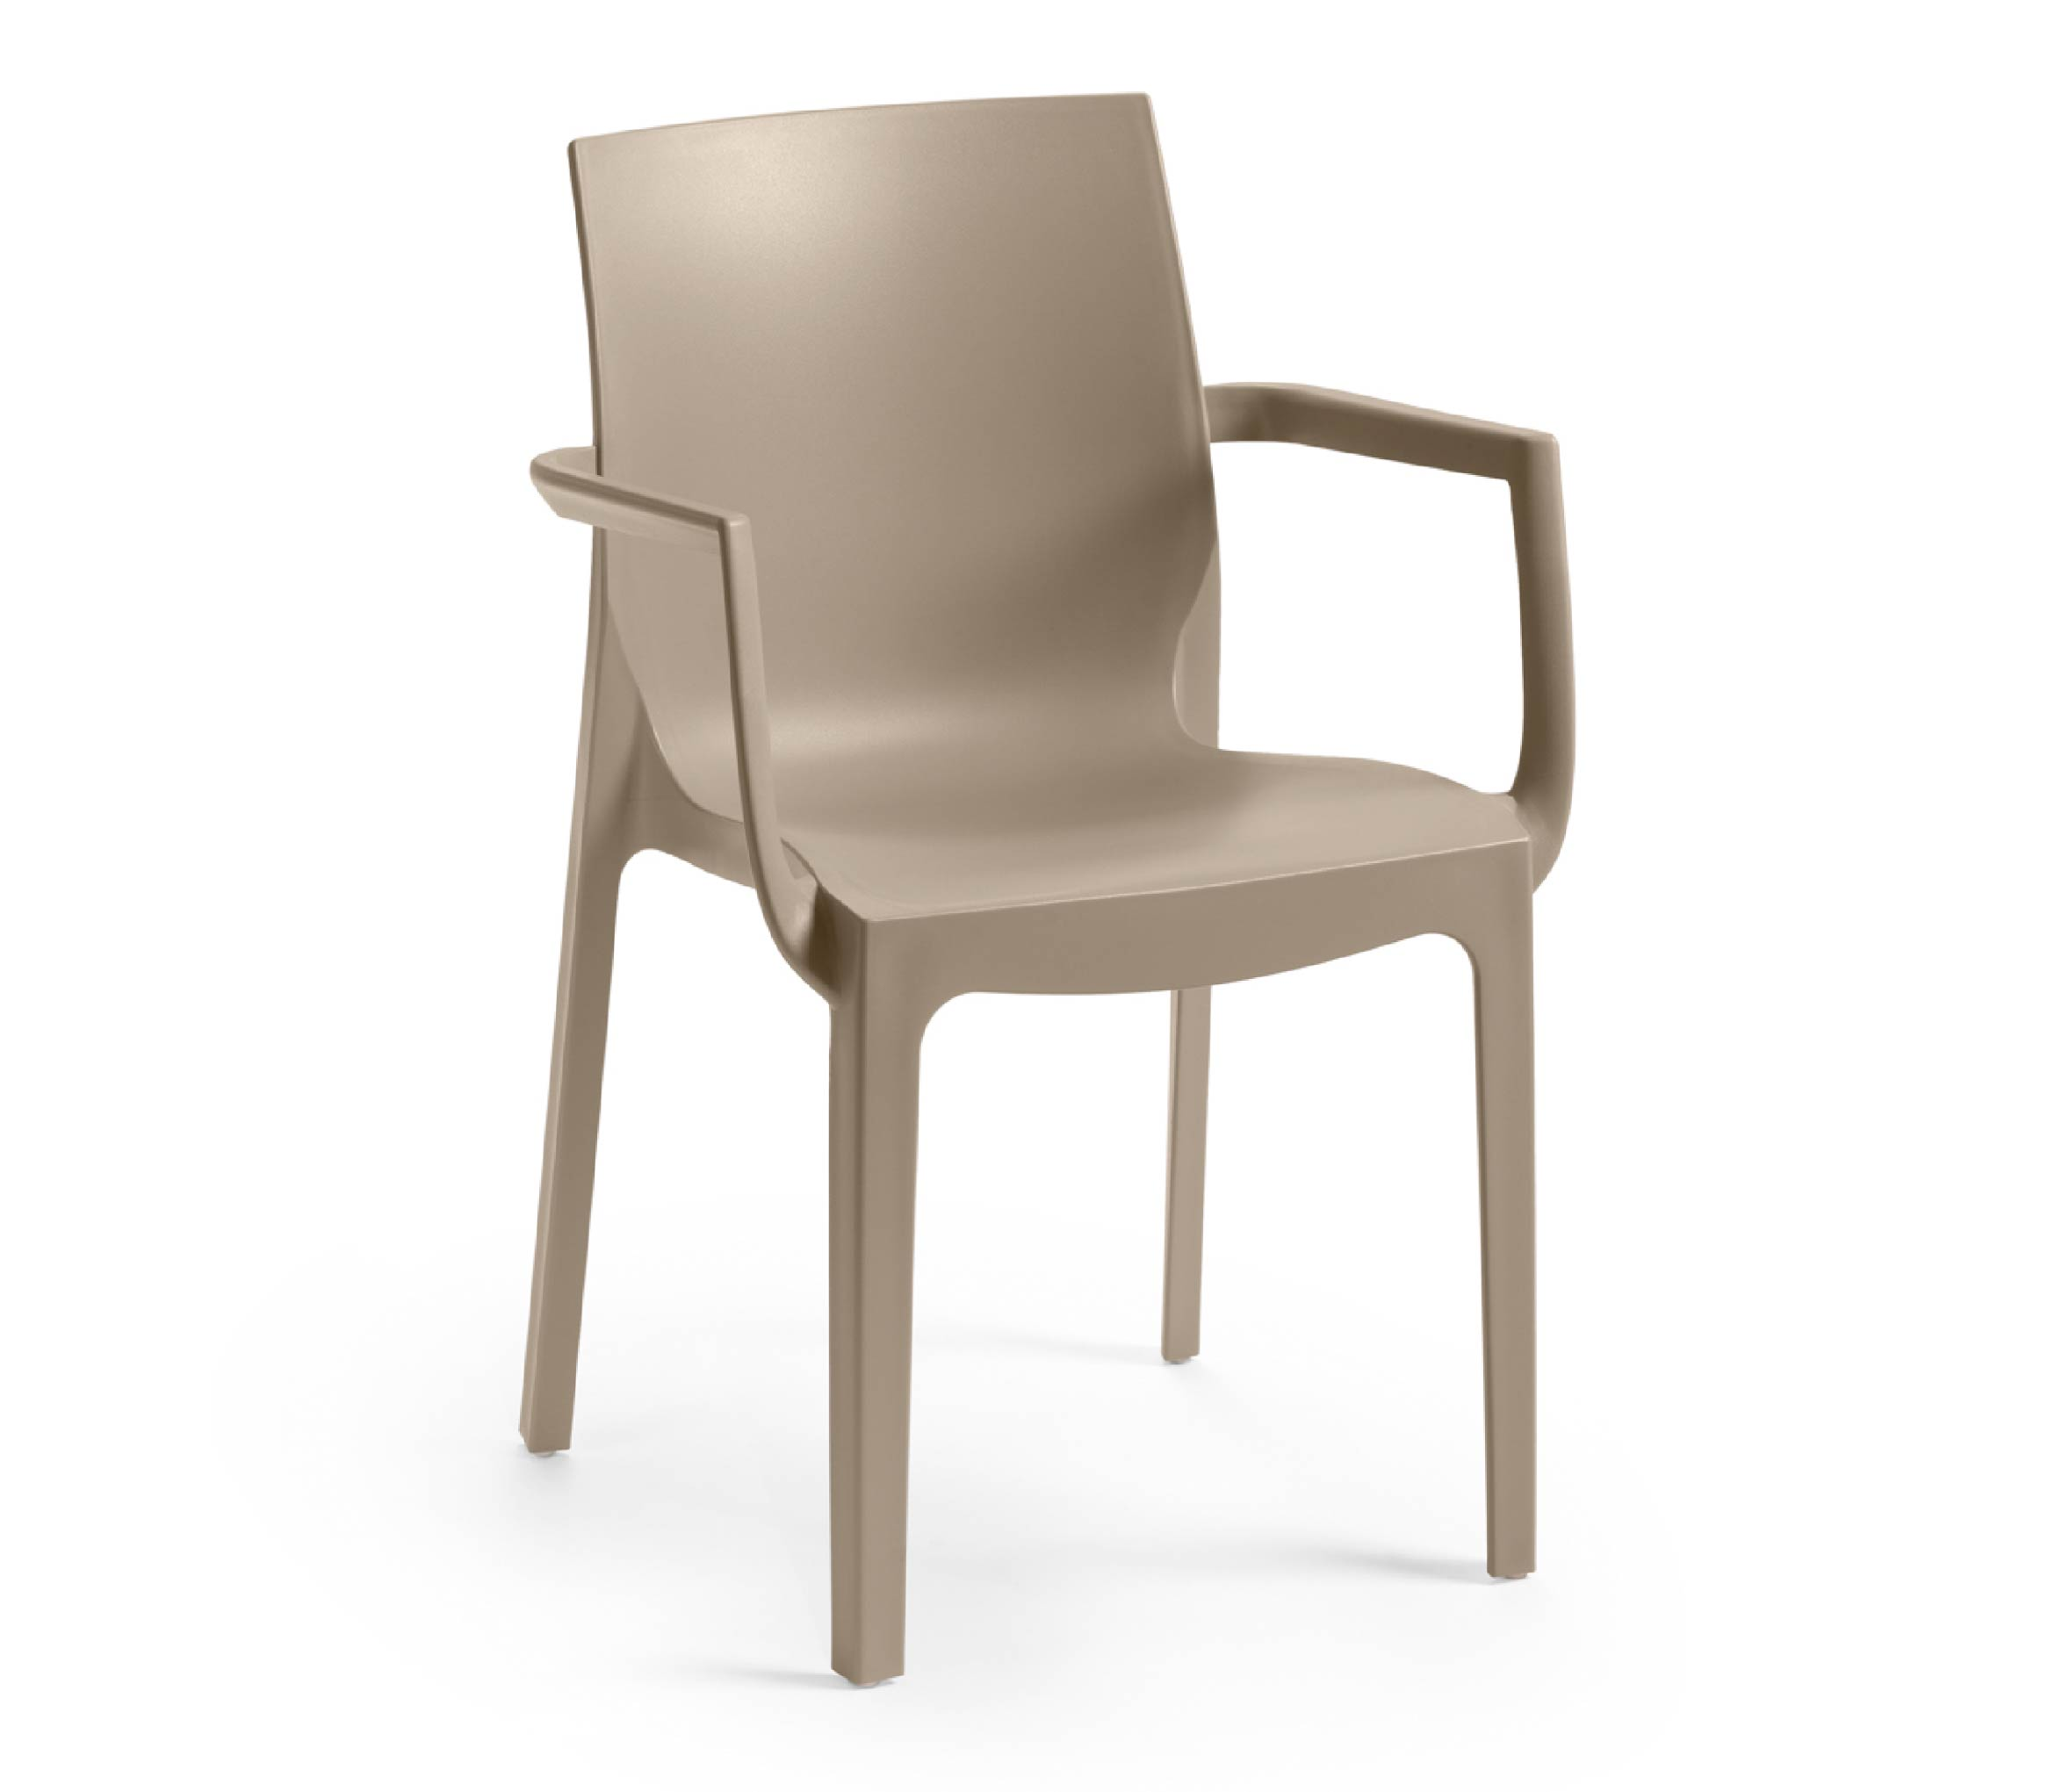 8 - TENSAI_FURNITURE_EMMA_TAUPE_COLOR_PLASTIC_ARMCHAIR_white_background_802_001